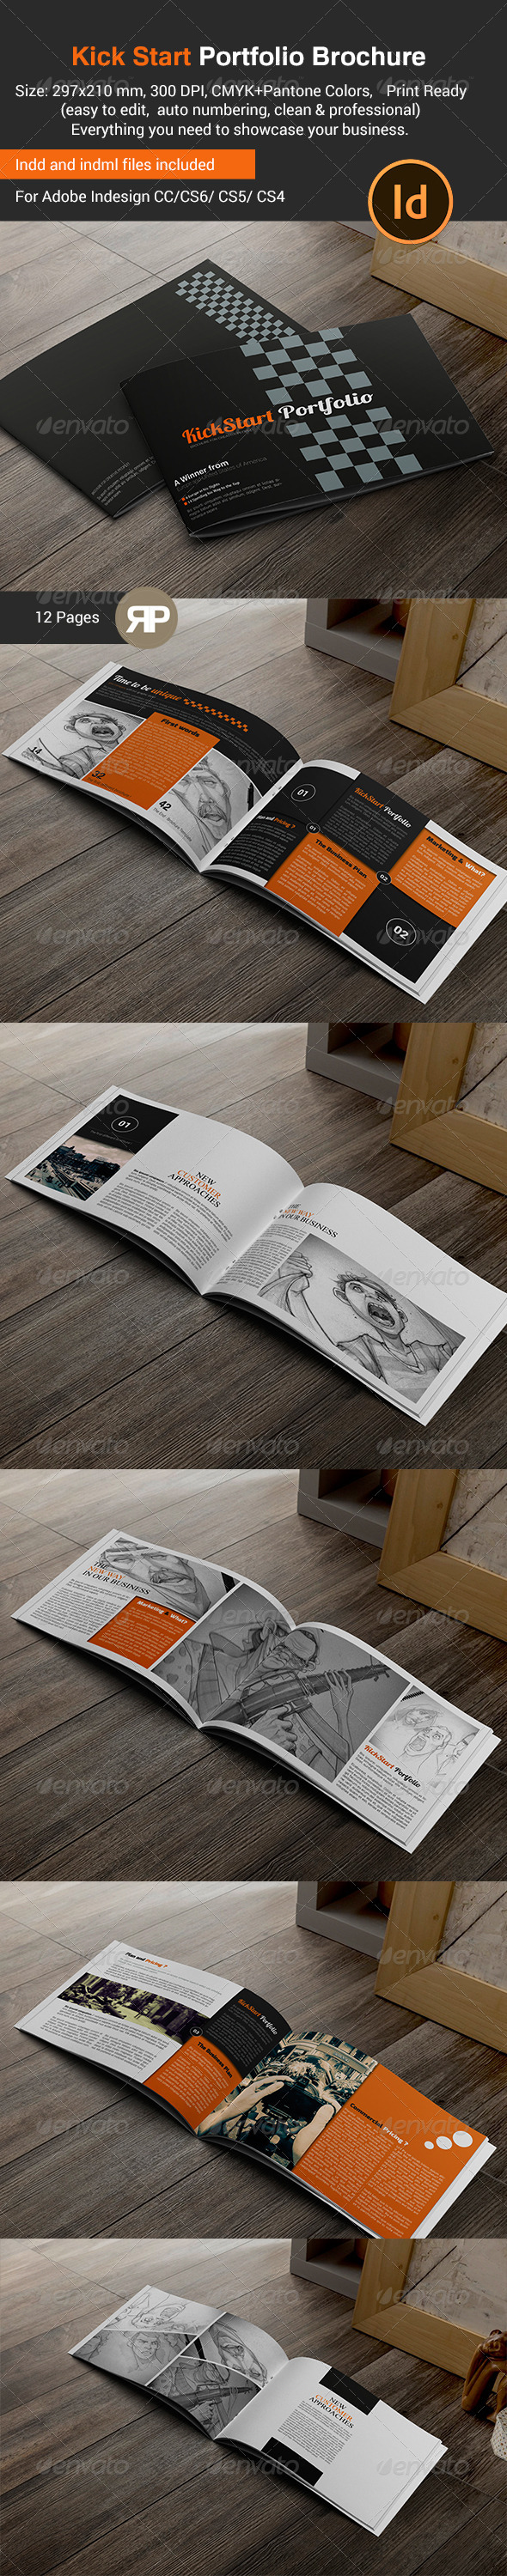 GraphicRiver New Way Portfolio Brochure Template 7807432